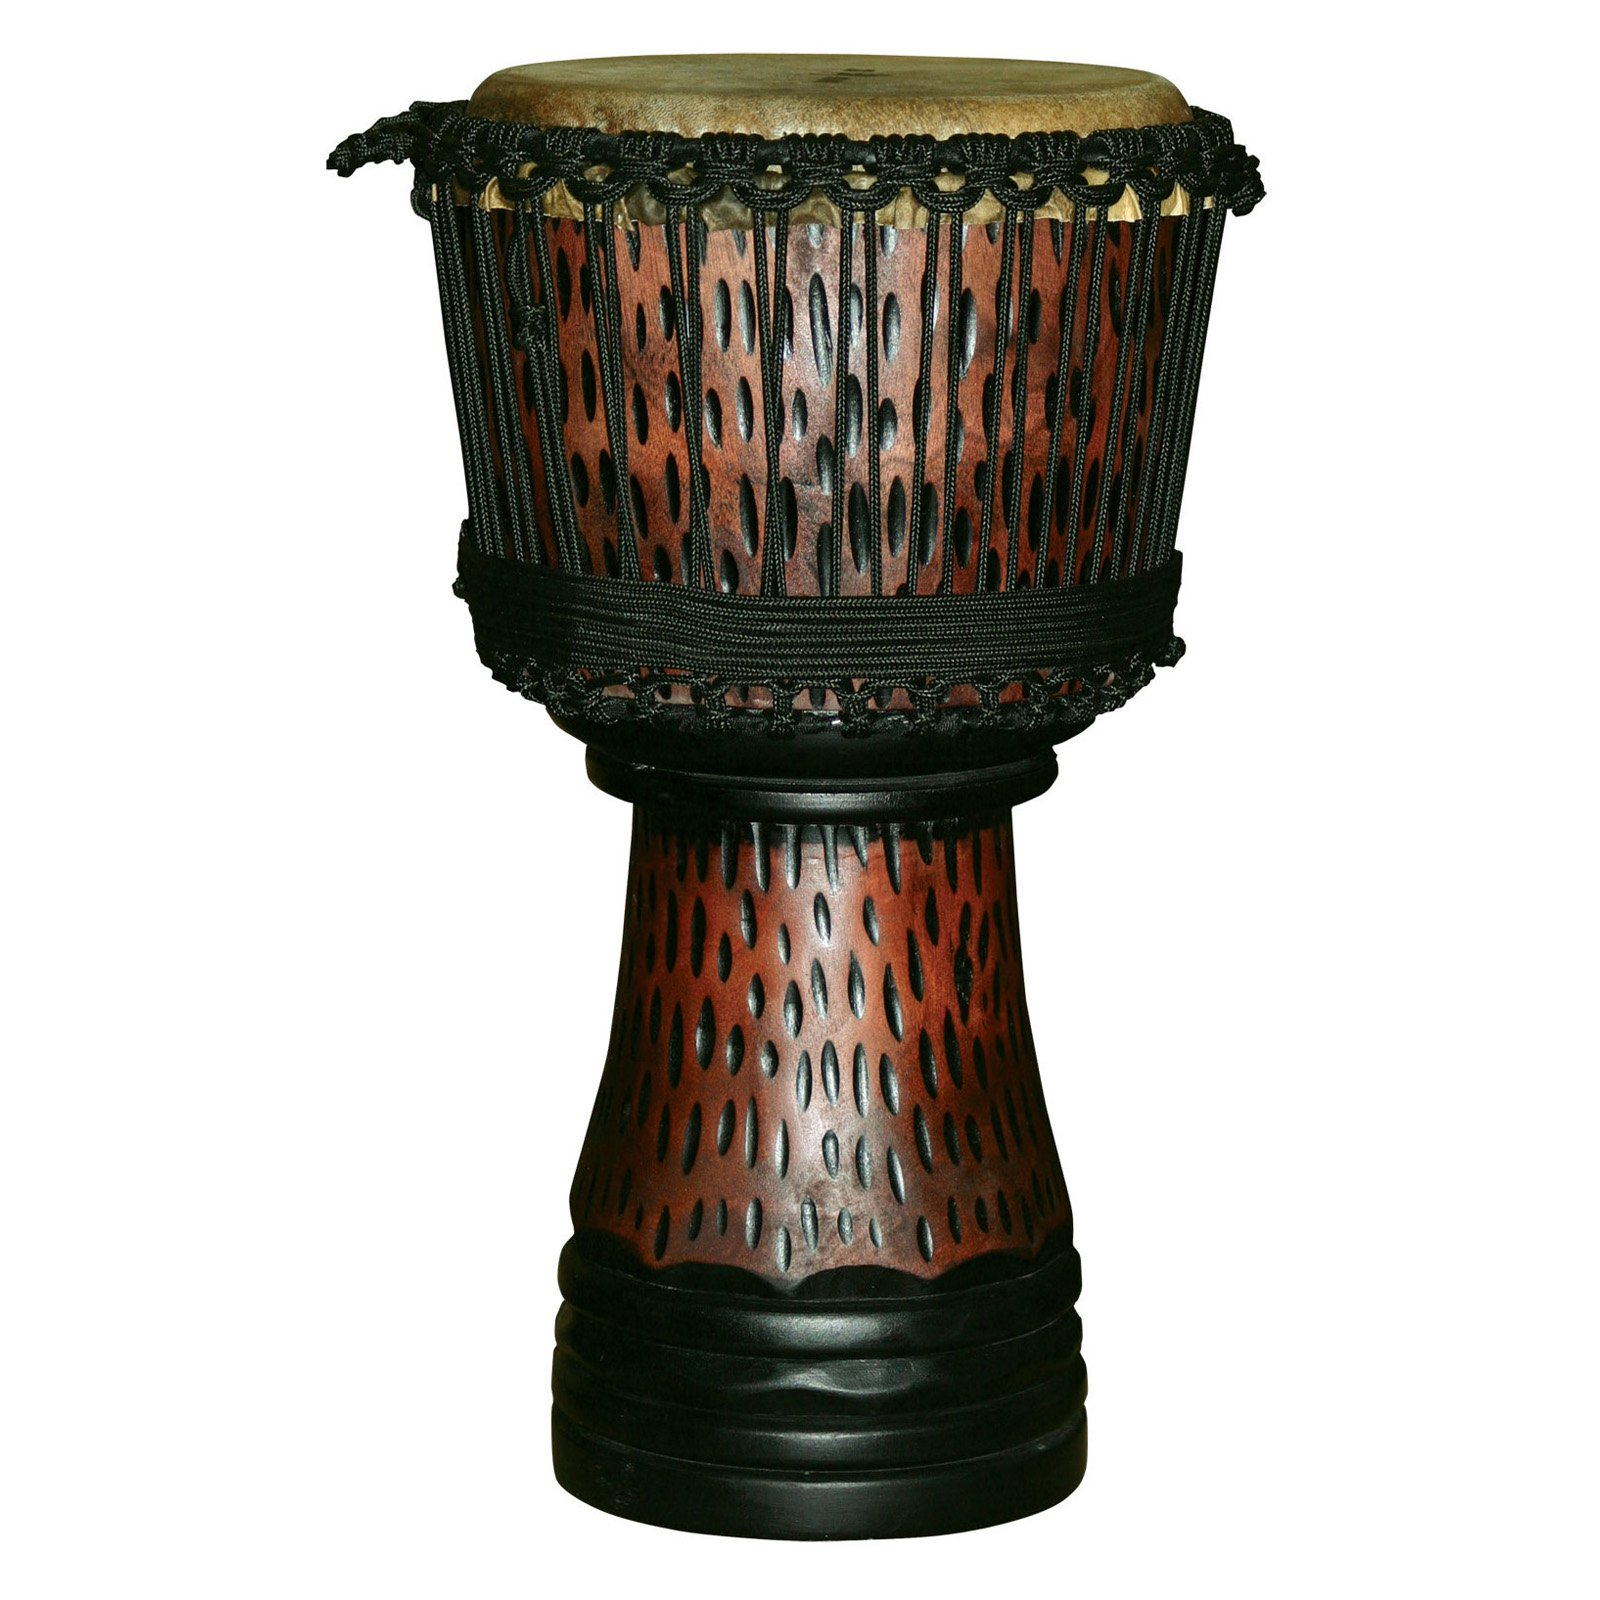 X8 Drums King Cheetah Elite Pro Djembe Drum